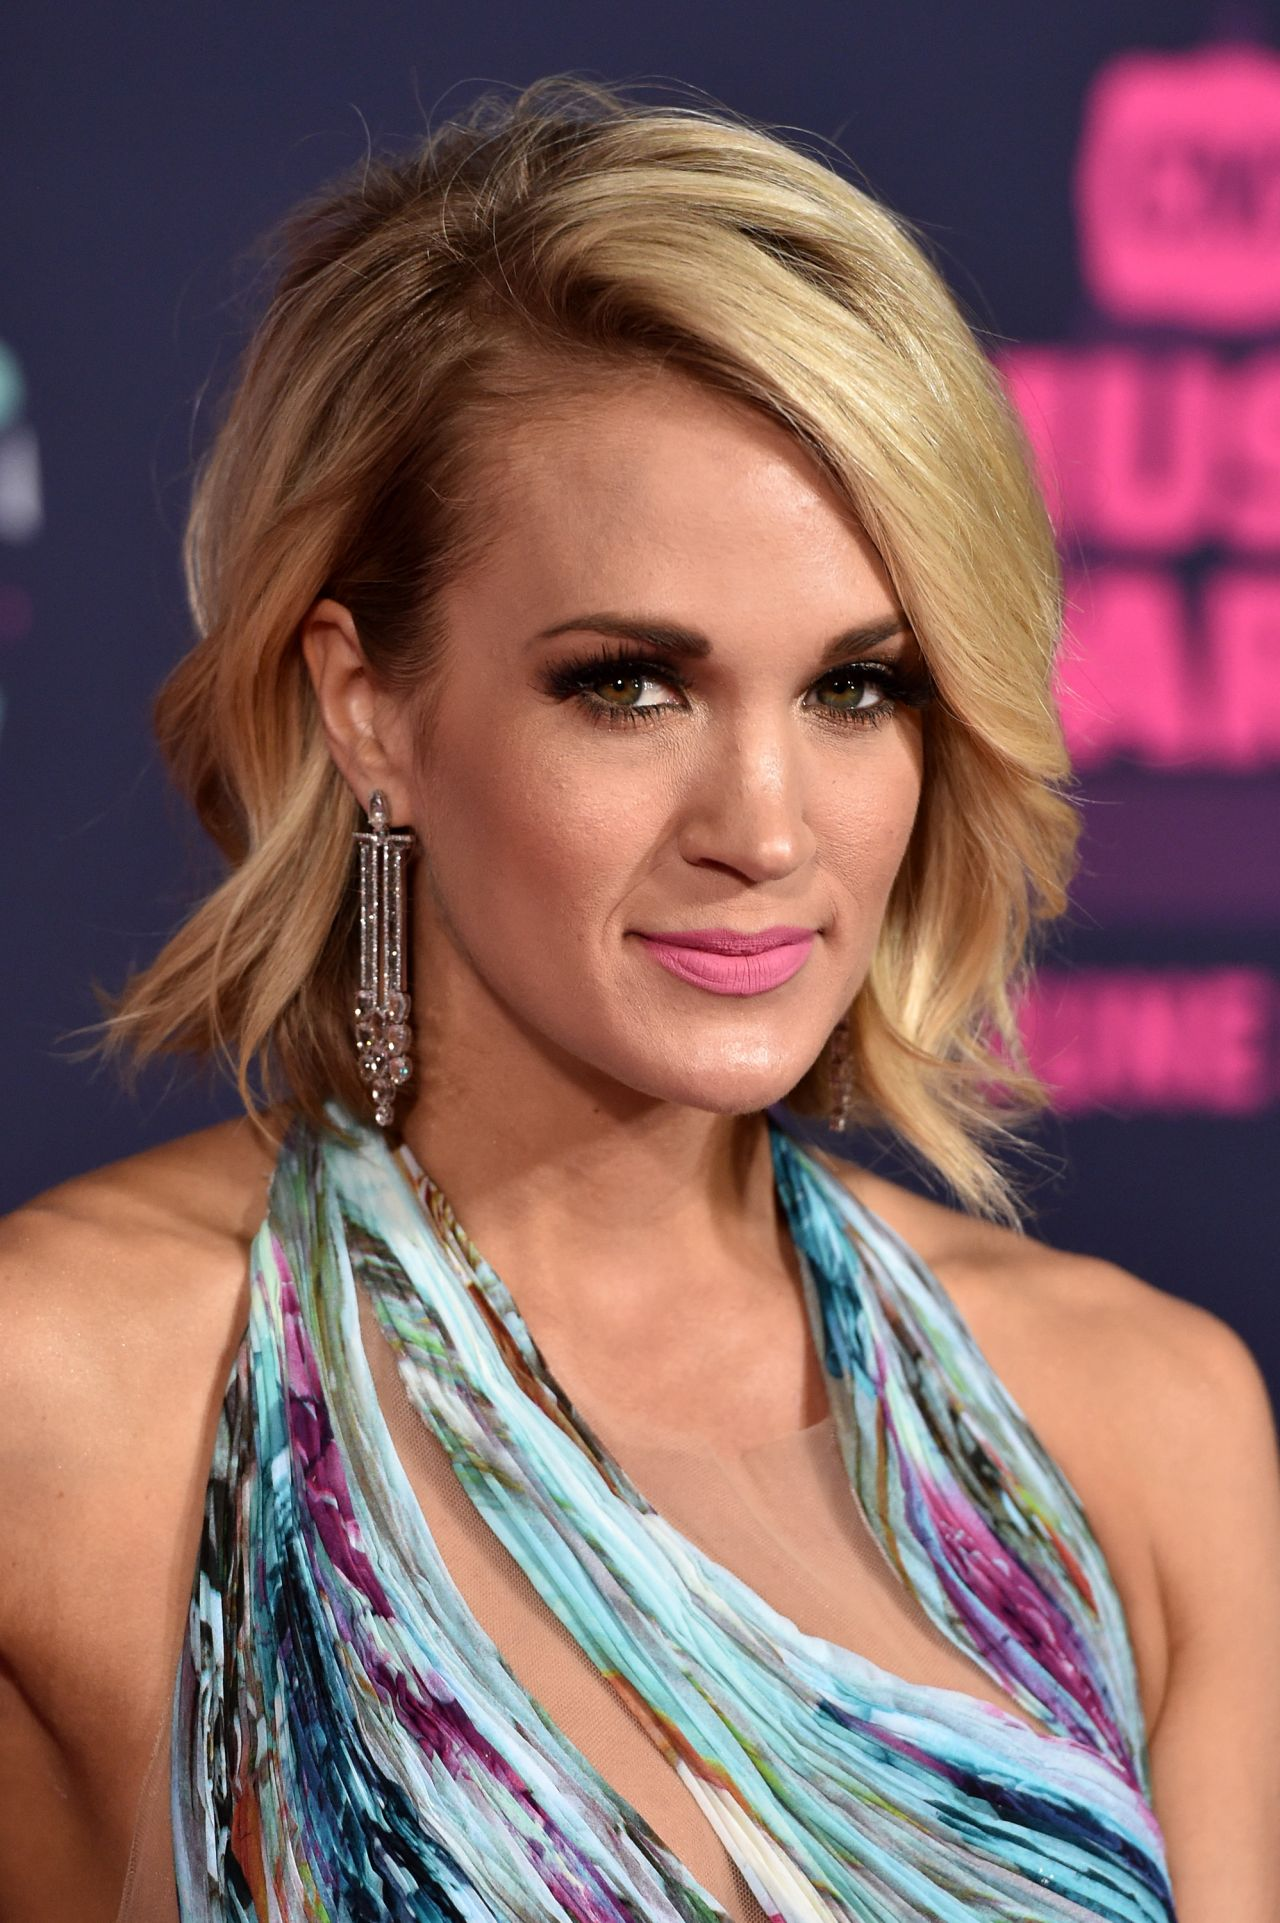 carrie underwood - photo #25